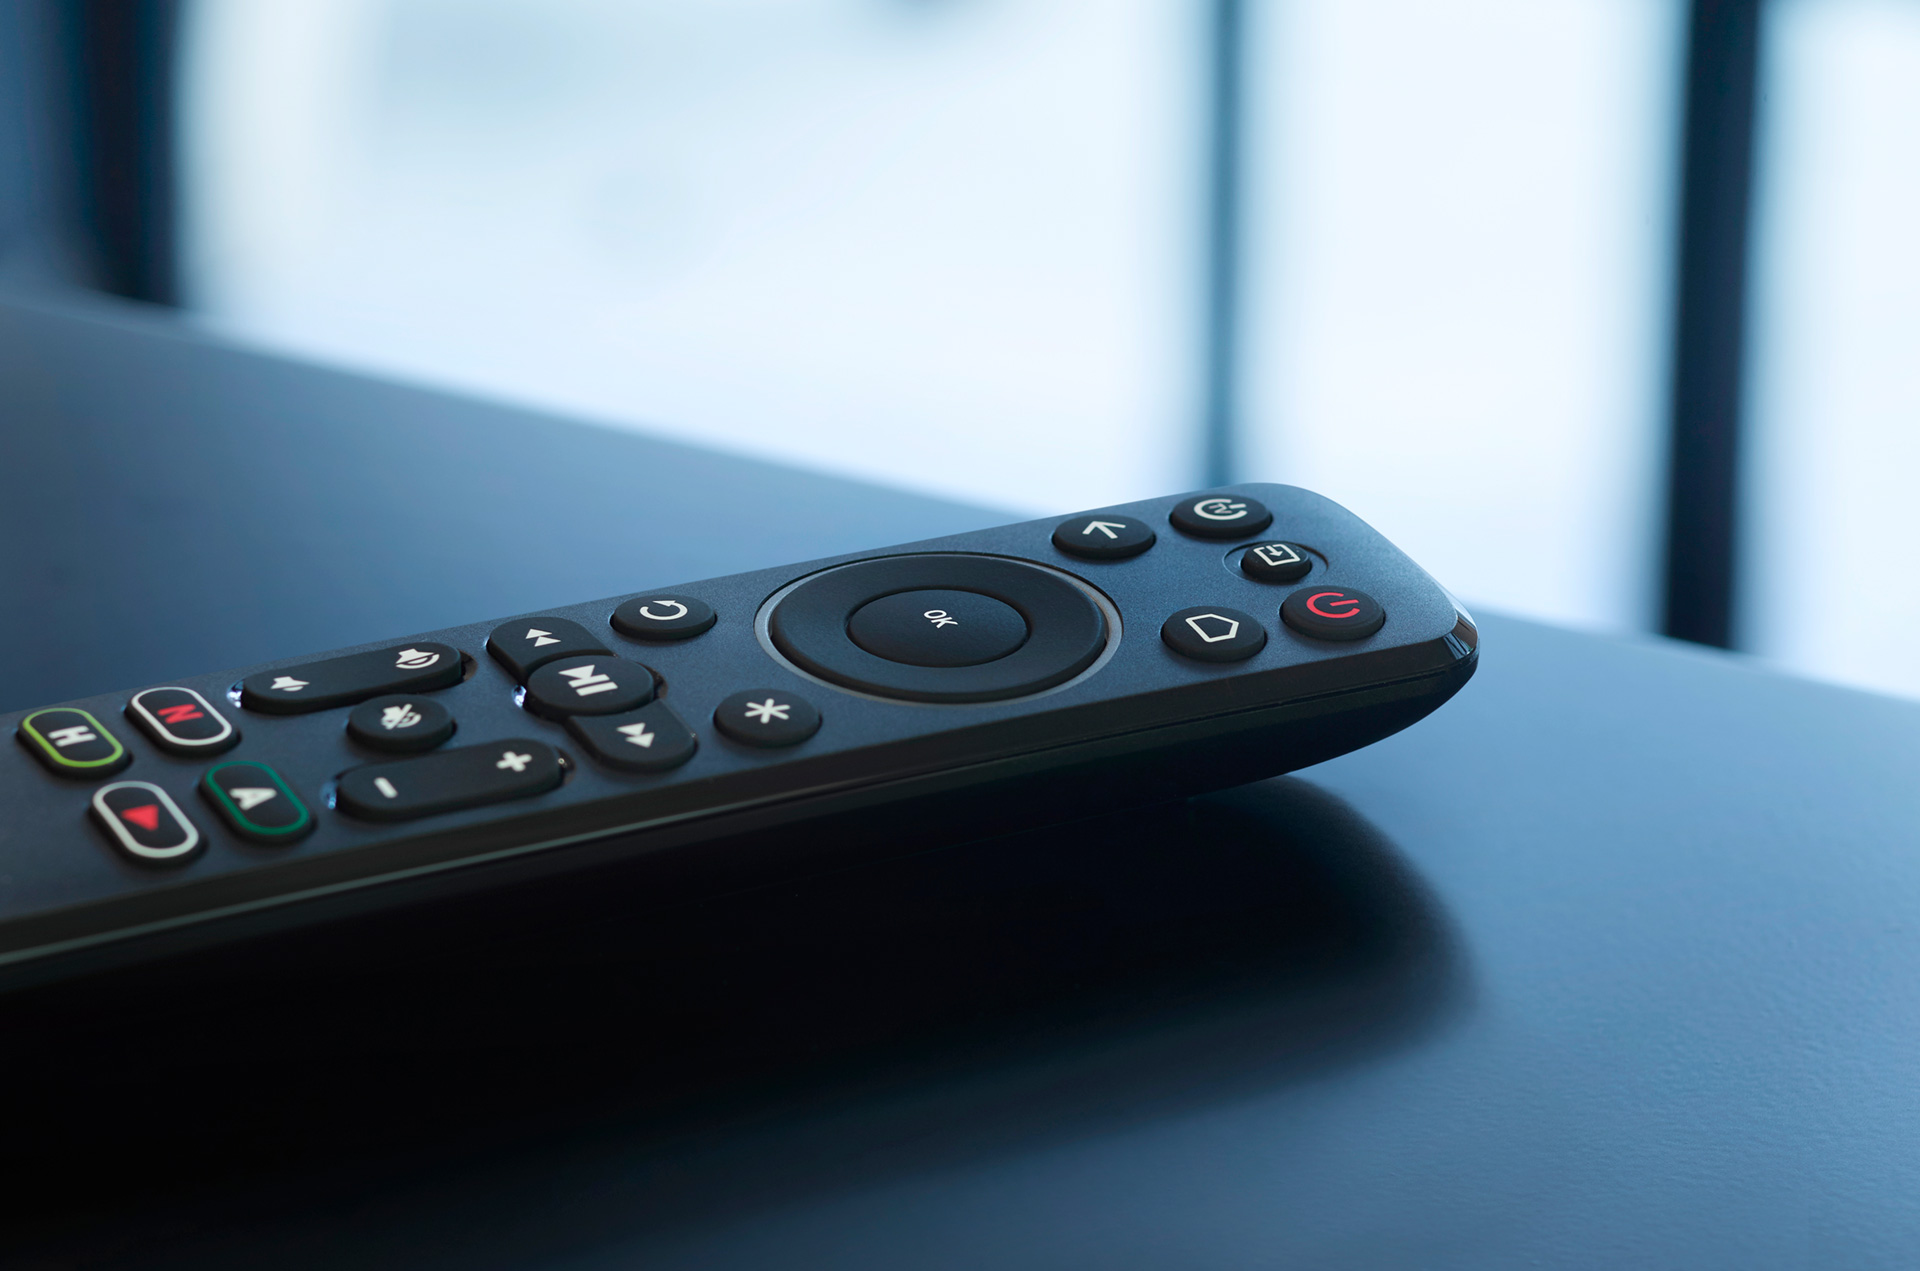 Optimal design & simplicity remotes